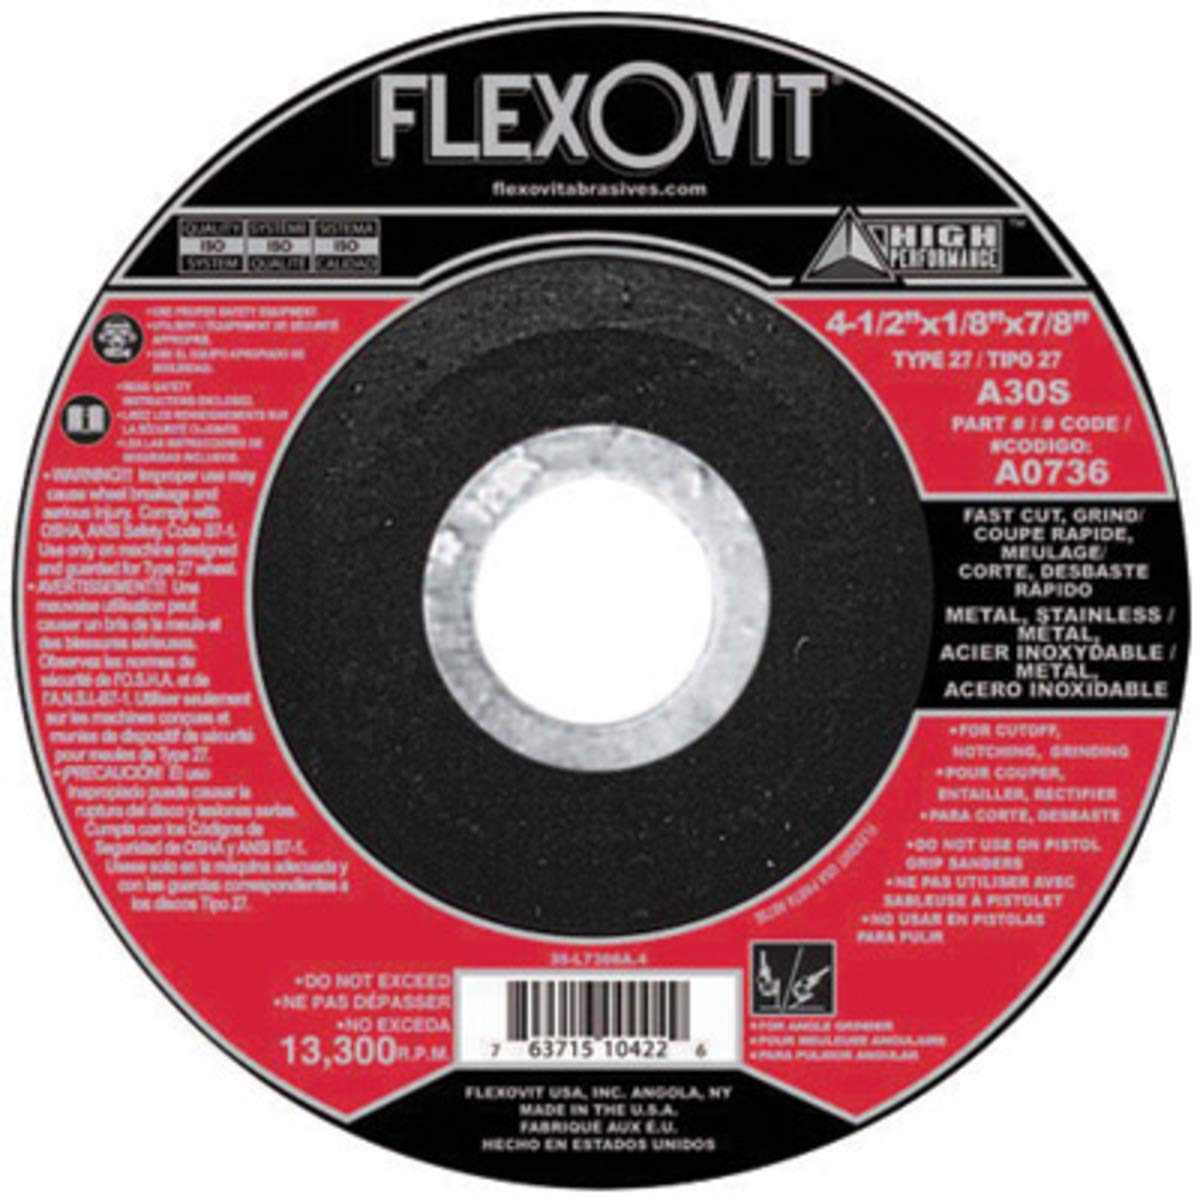 FlexOVit 9'' X 1/8'' X 5/8'' - 11 A30S Aluminum Oxide HIGH PERFORMANCE Fast Cut Type 27 Spin-On Depressed Center Cut Off And Grinding Wheel For Use, Package Size: 10 Each by FlexOVit Abrasives